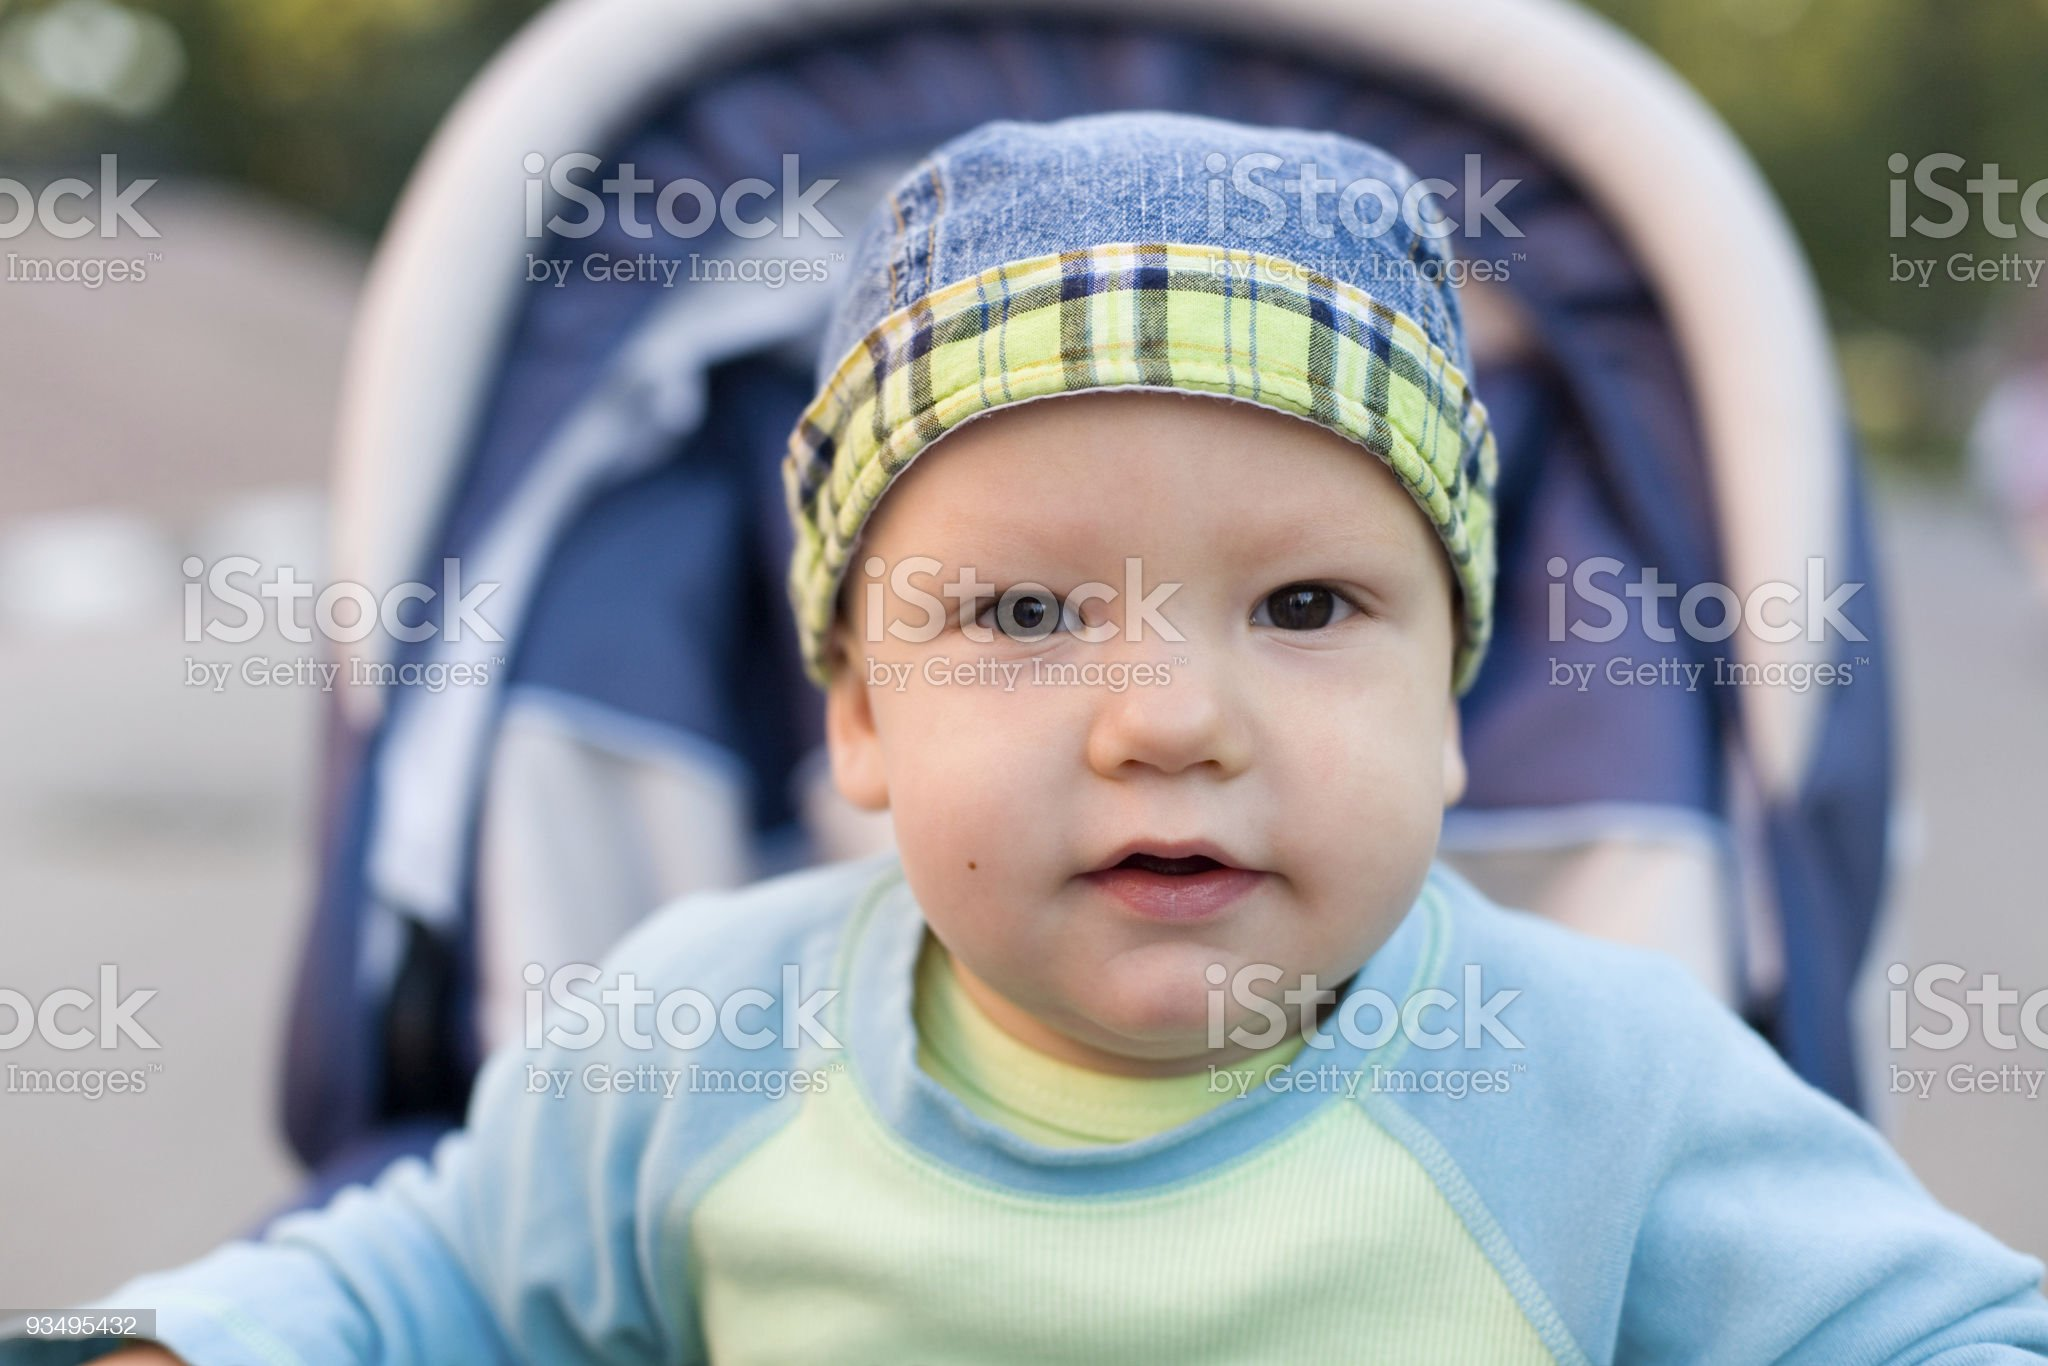 Baby in bandanna sitting stroller #13 royalty-free stock photo